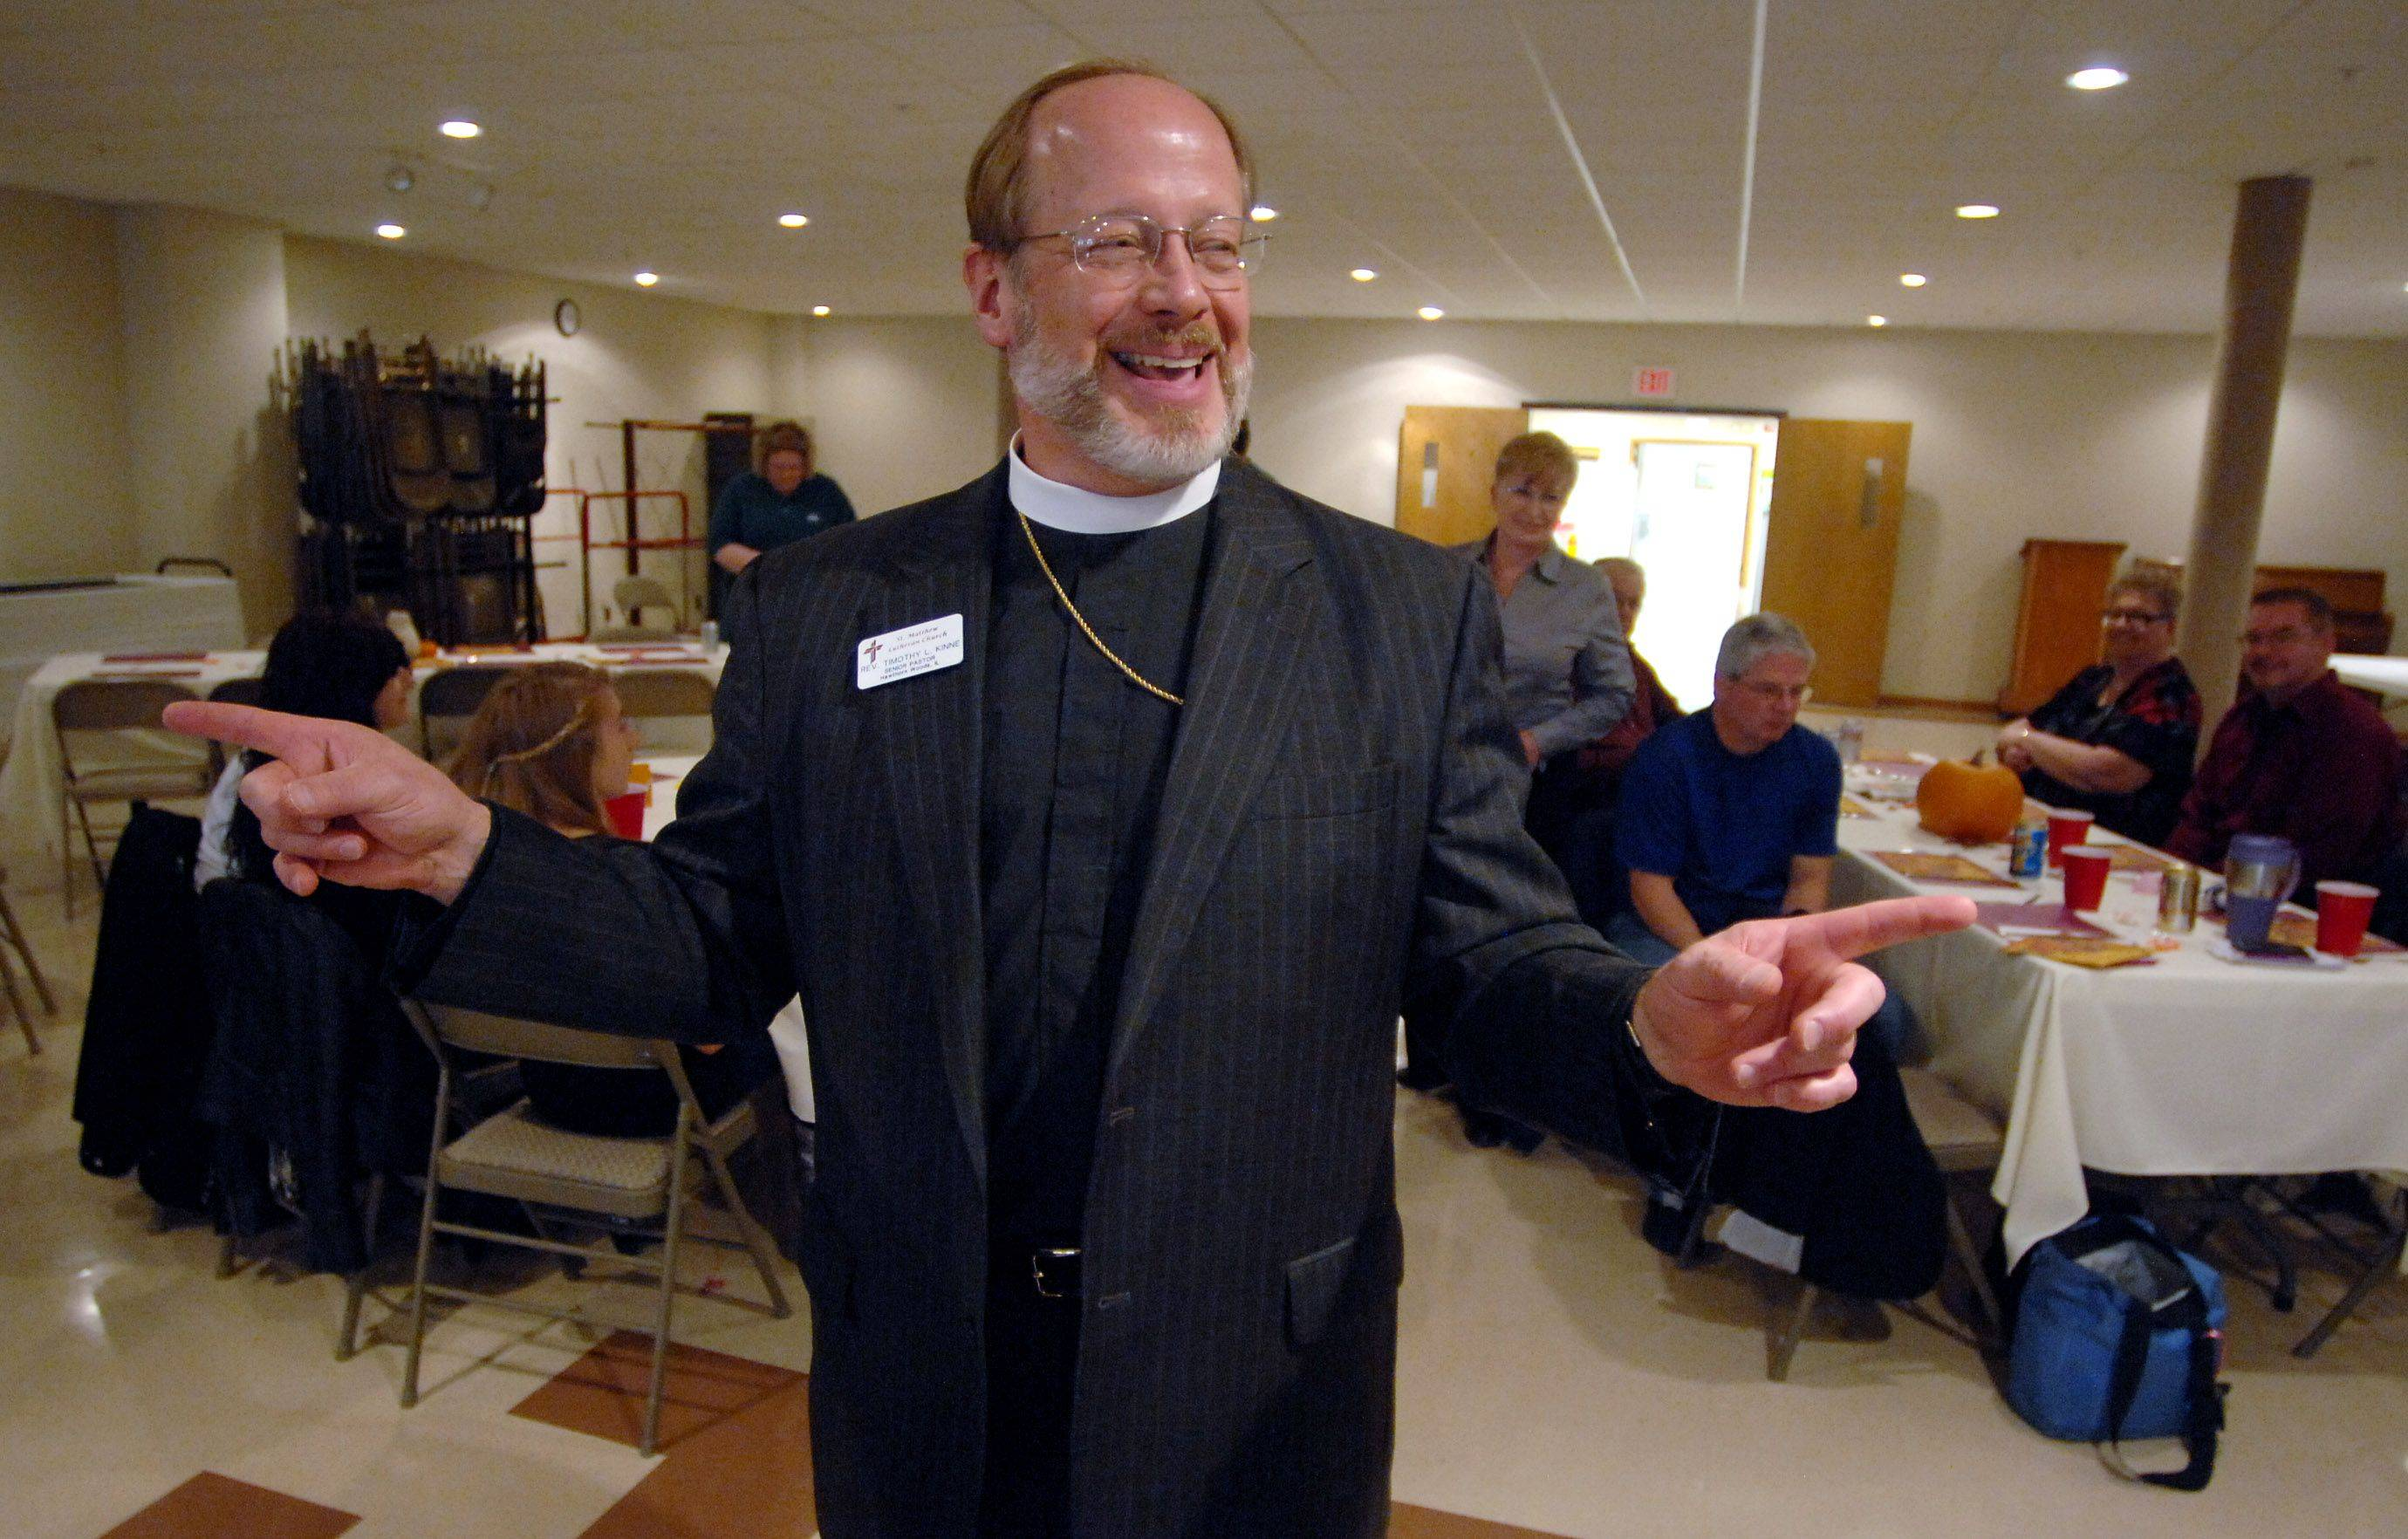 St. Matthew Lutheran Church senior pastor Timothy Kinne offers the blessing and welcomes guests to the Thanksgiving dinner at the Hawthorn Woods church Thursday.